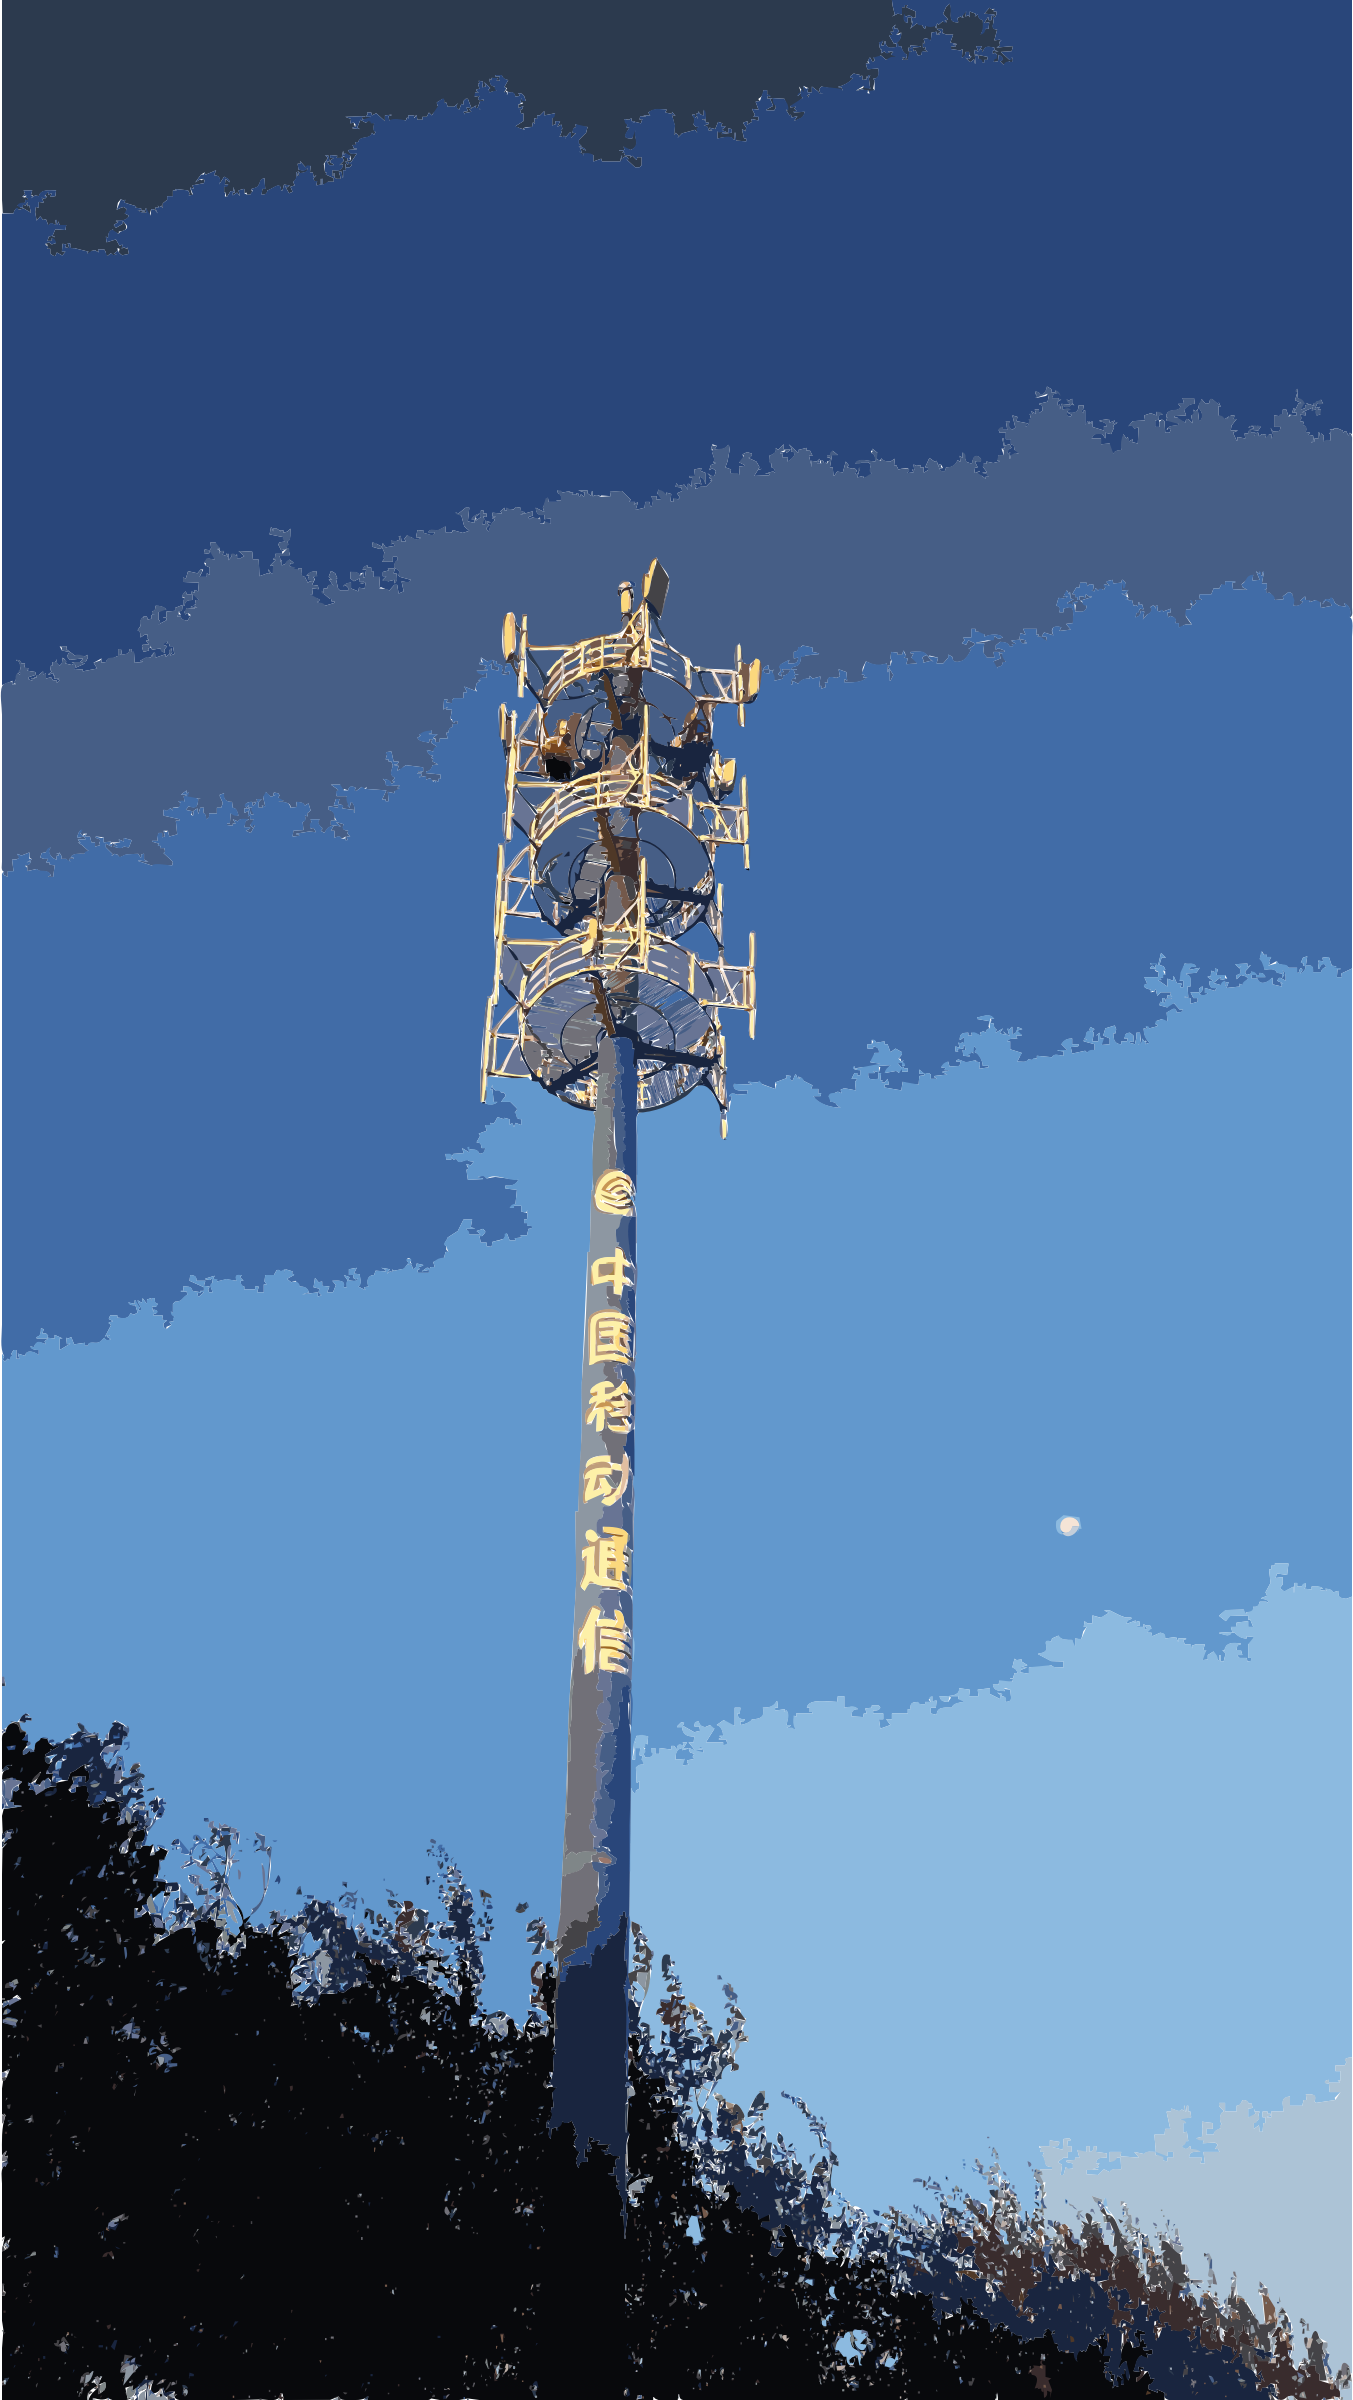 Mobile Tower Caochangdi by 18510029763